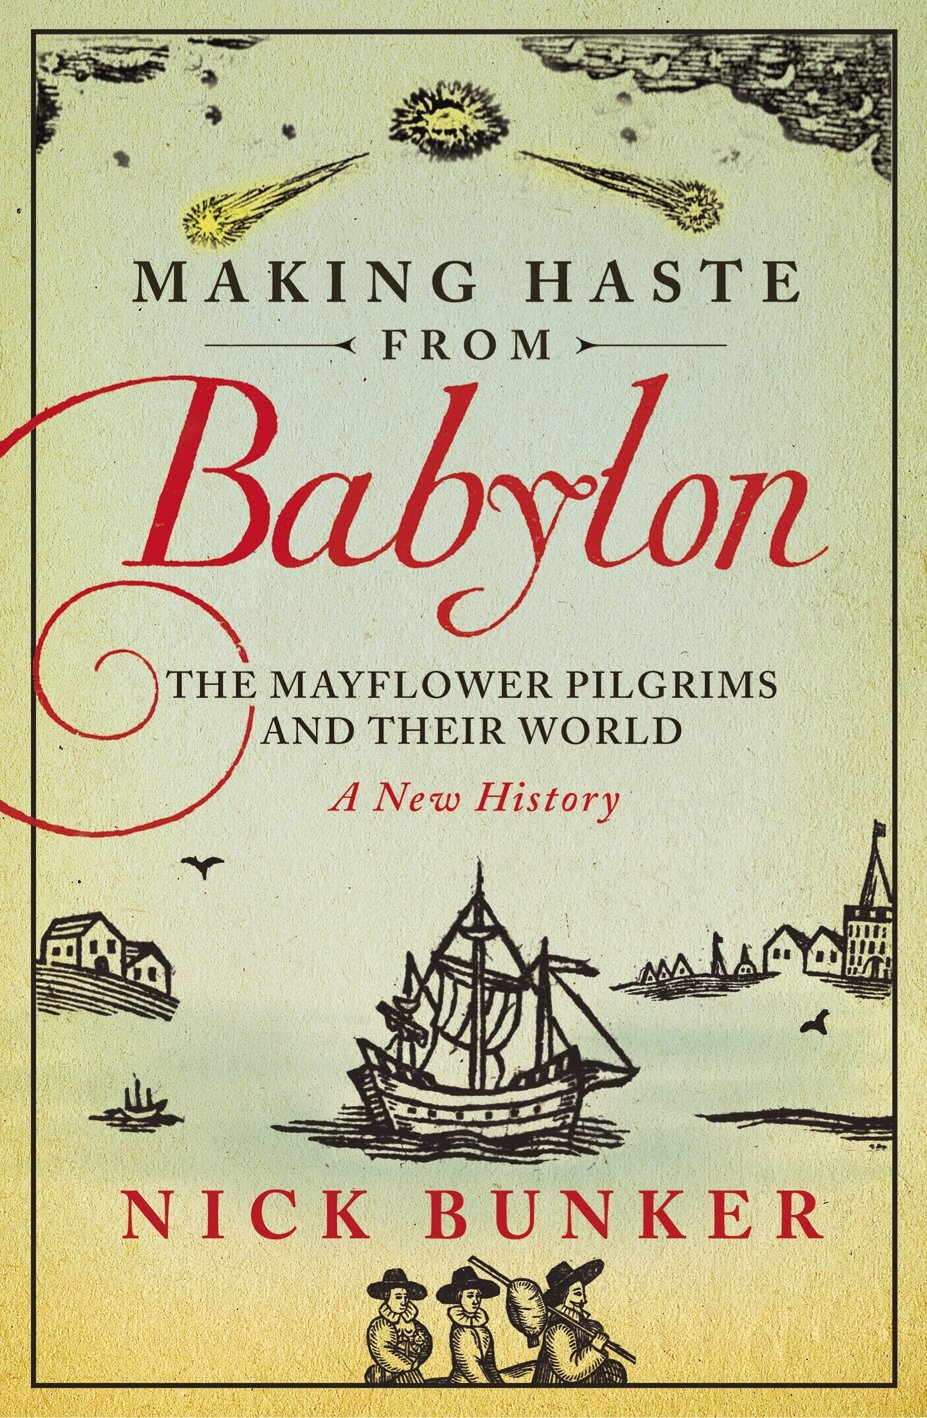 Making Haste from Babylon: The Mayflower Pilgrims and Their World: A New History PDF